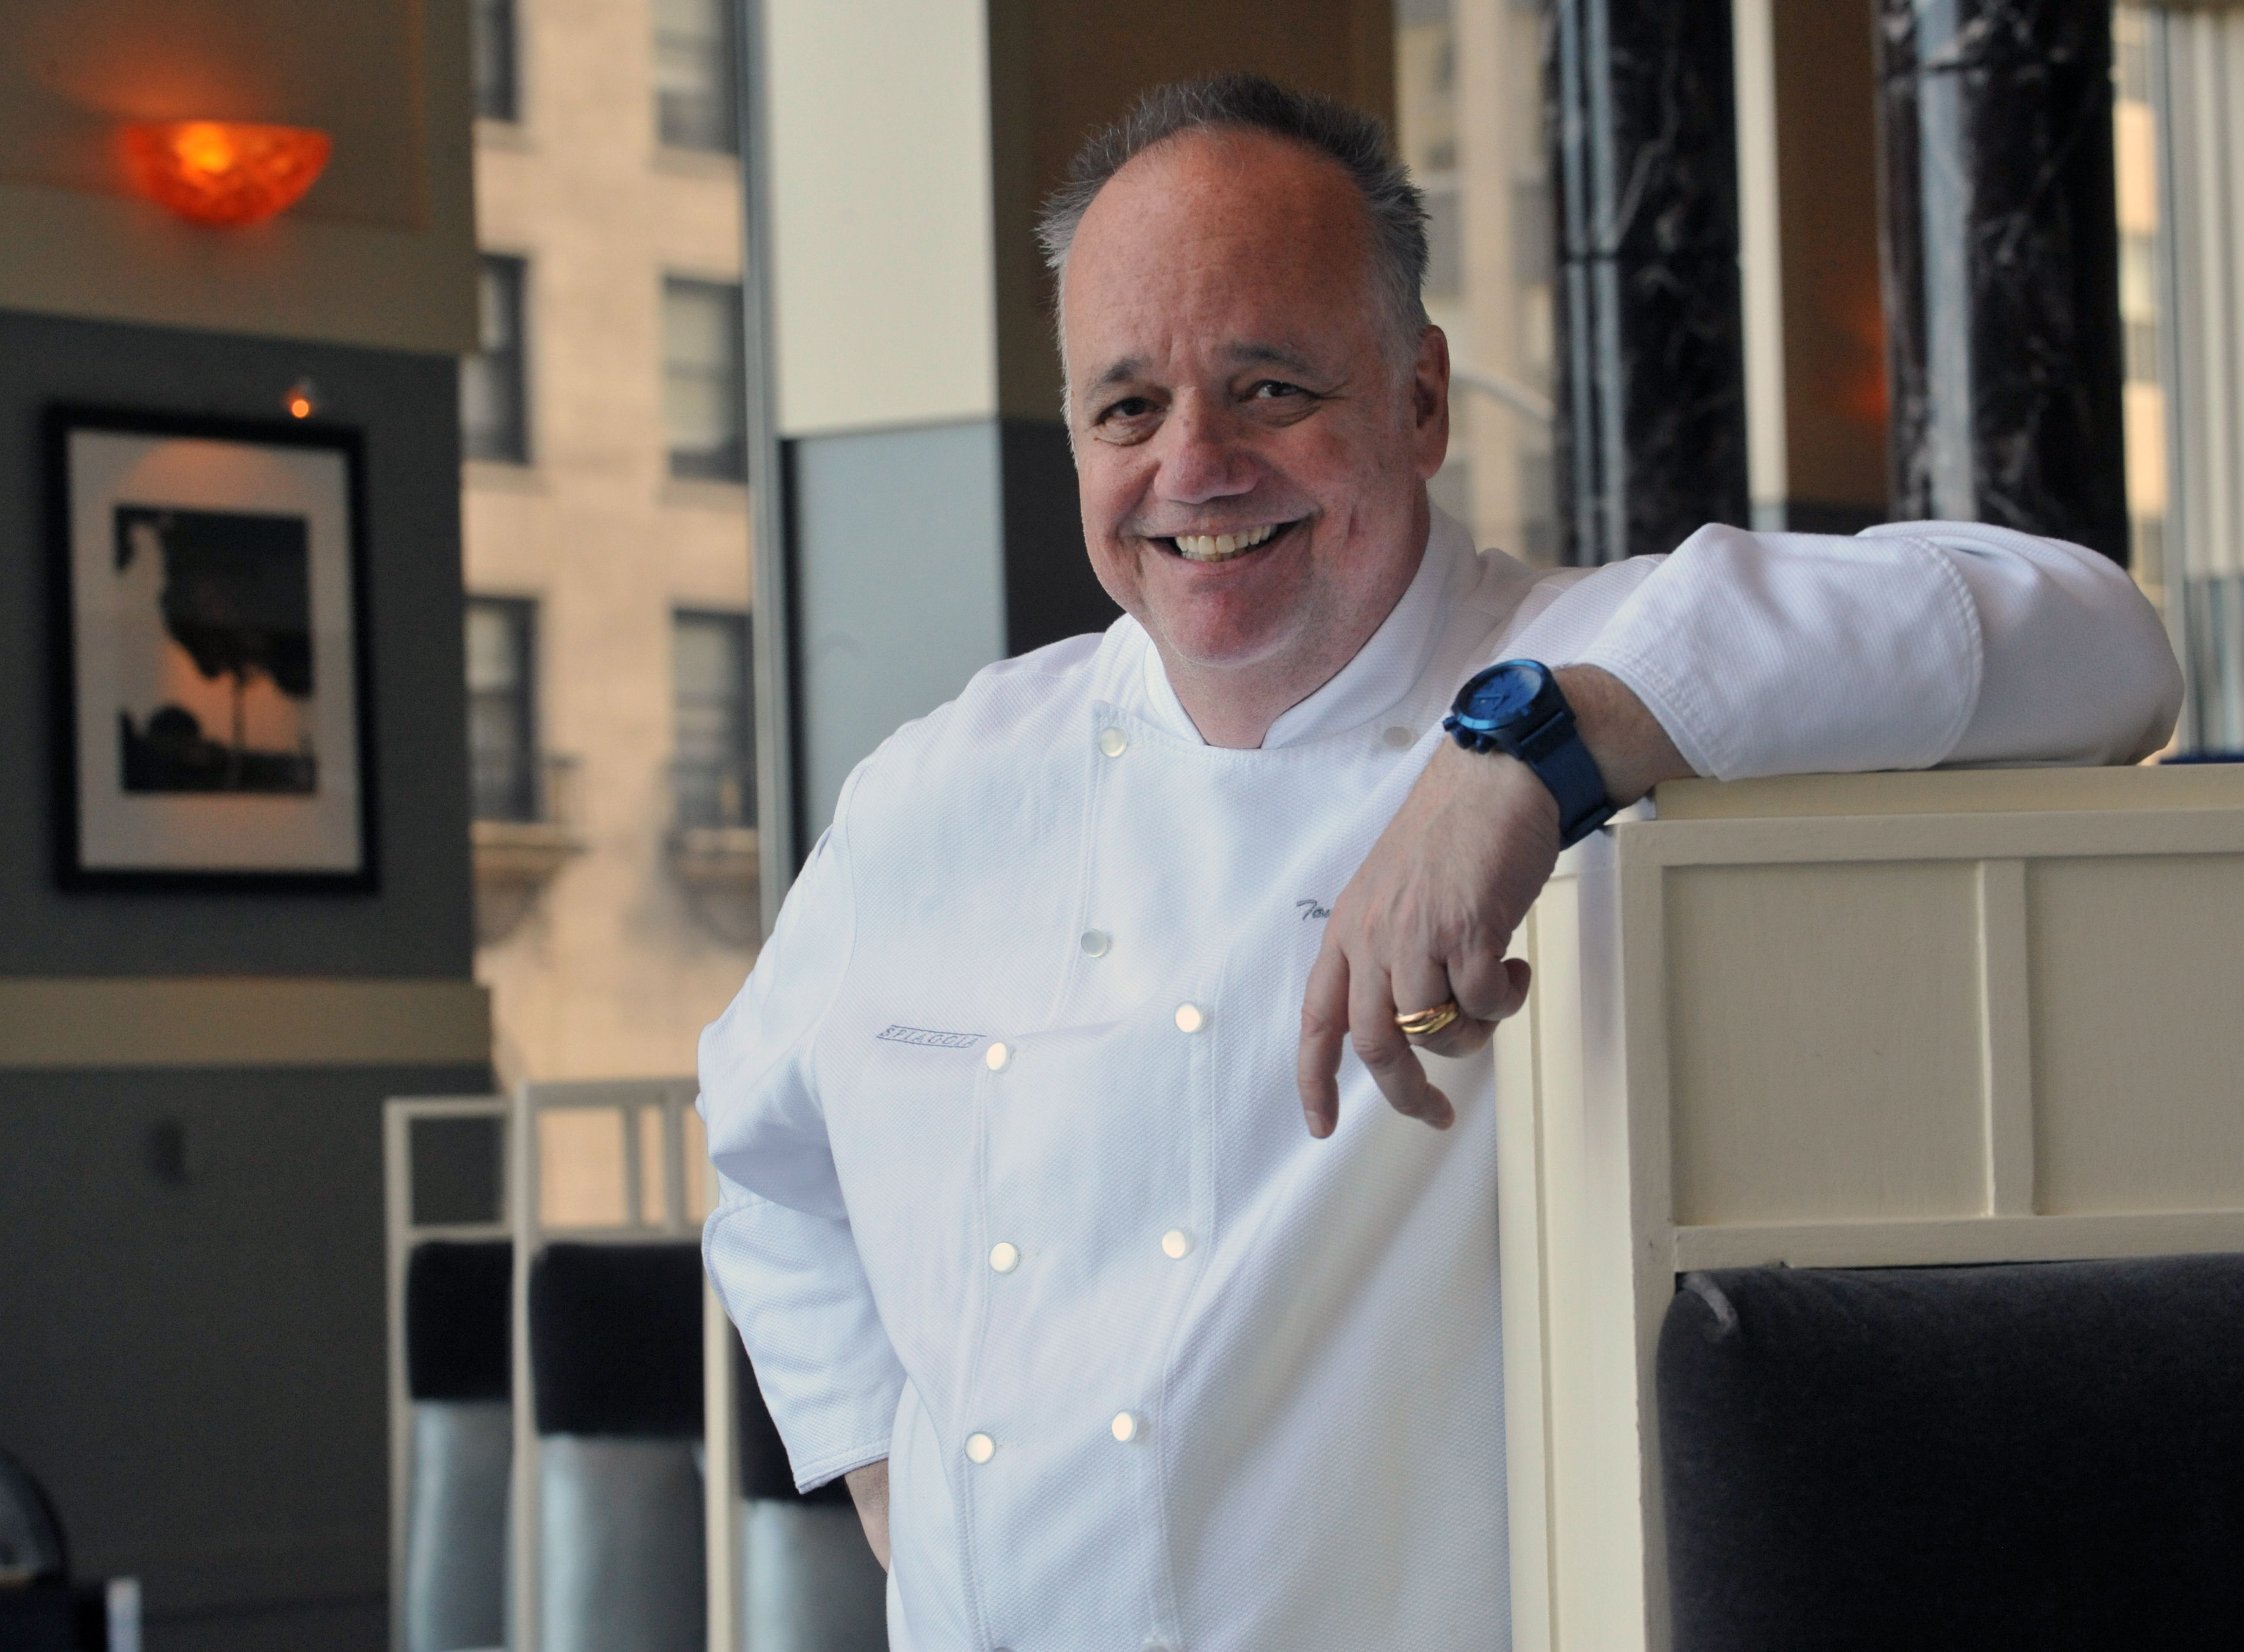 For nearly 40 years,  Chef Tony Mantuano elevated Italian cuisine to new heights at Spiaggia restaurant in Chicago.